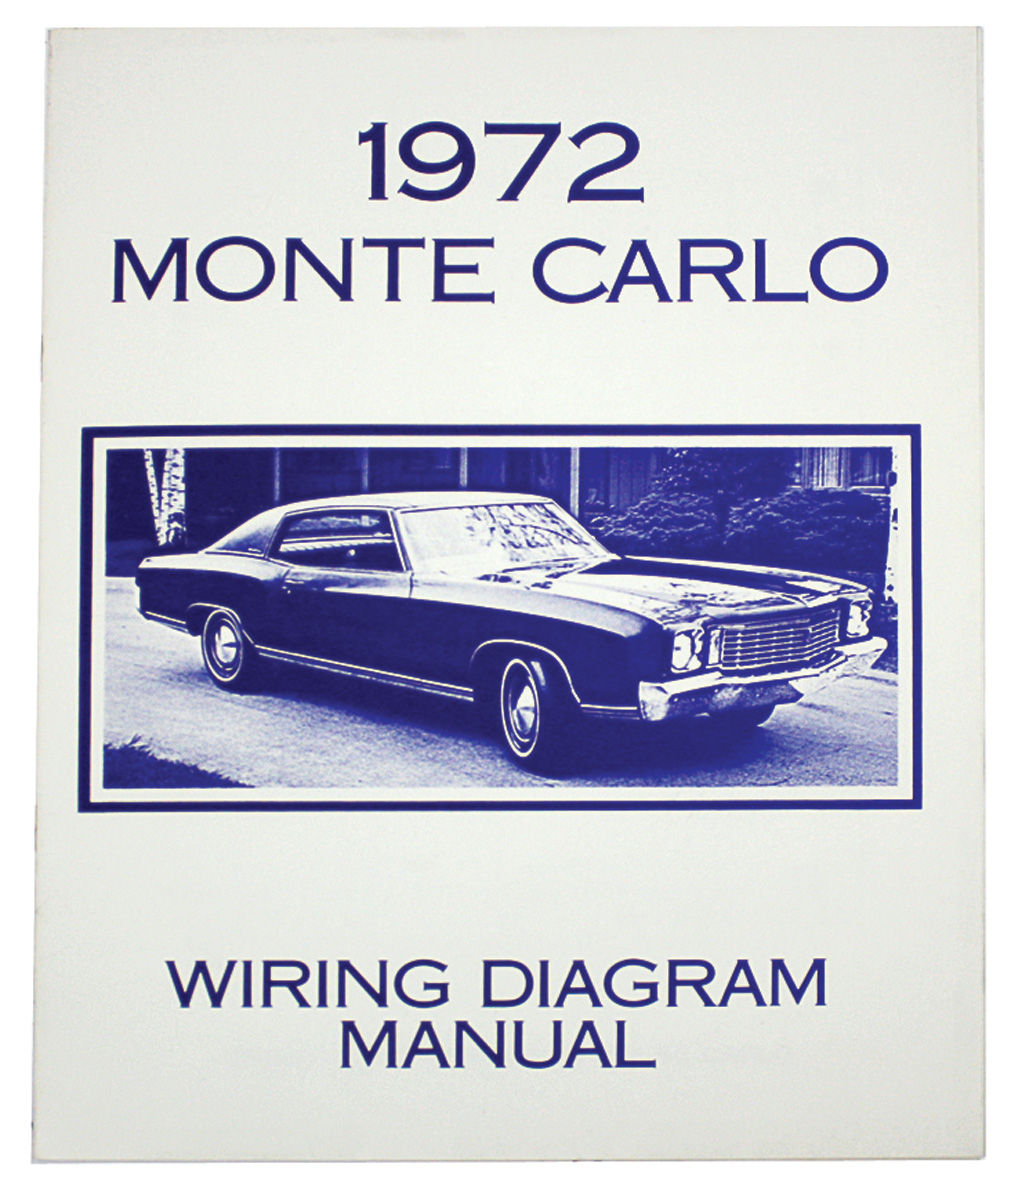 monte carlo wiring diagram manuals @ opgi com 1973 monte carlo wiring diagram at 1972 Monte Carlo Wiring Diagram